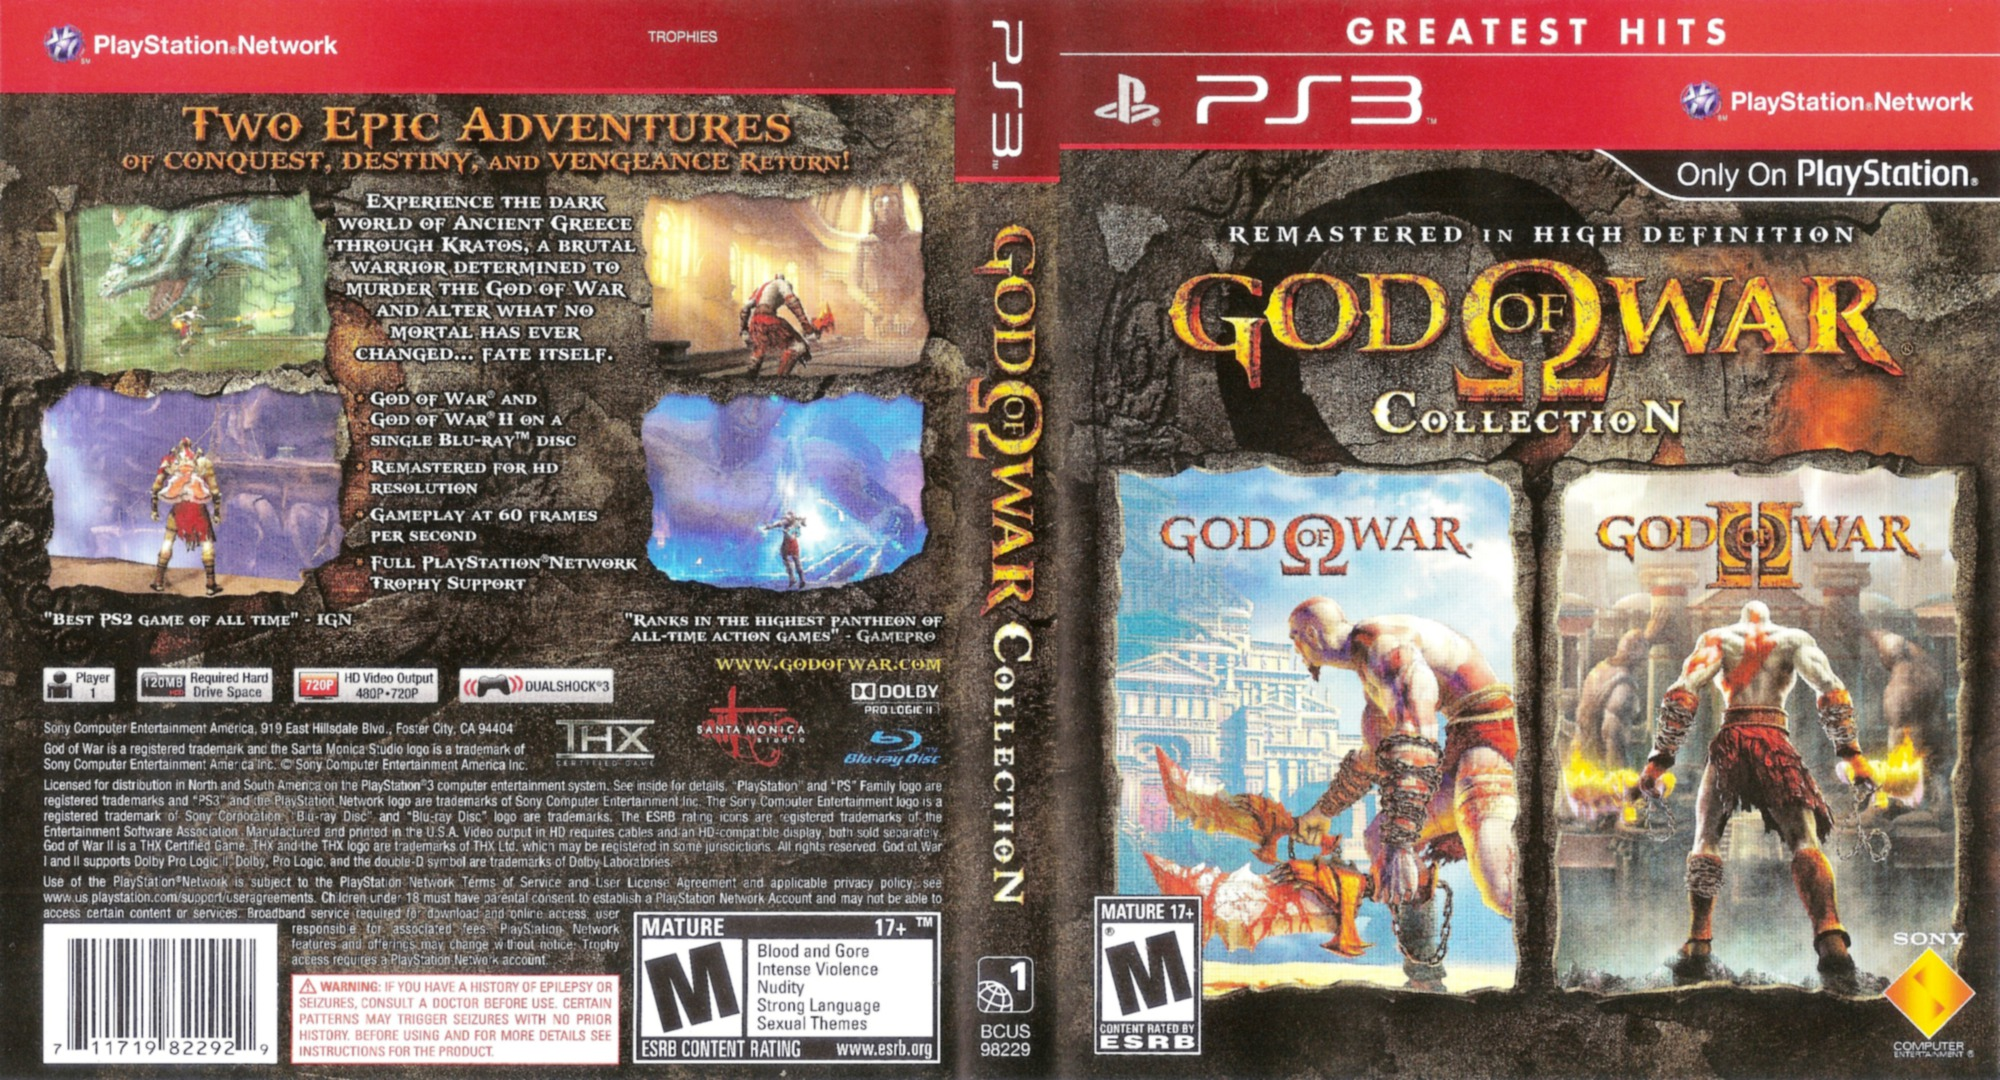 God of War Collection PS3 coverfullHQB (BCUS98229)